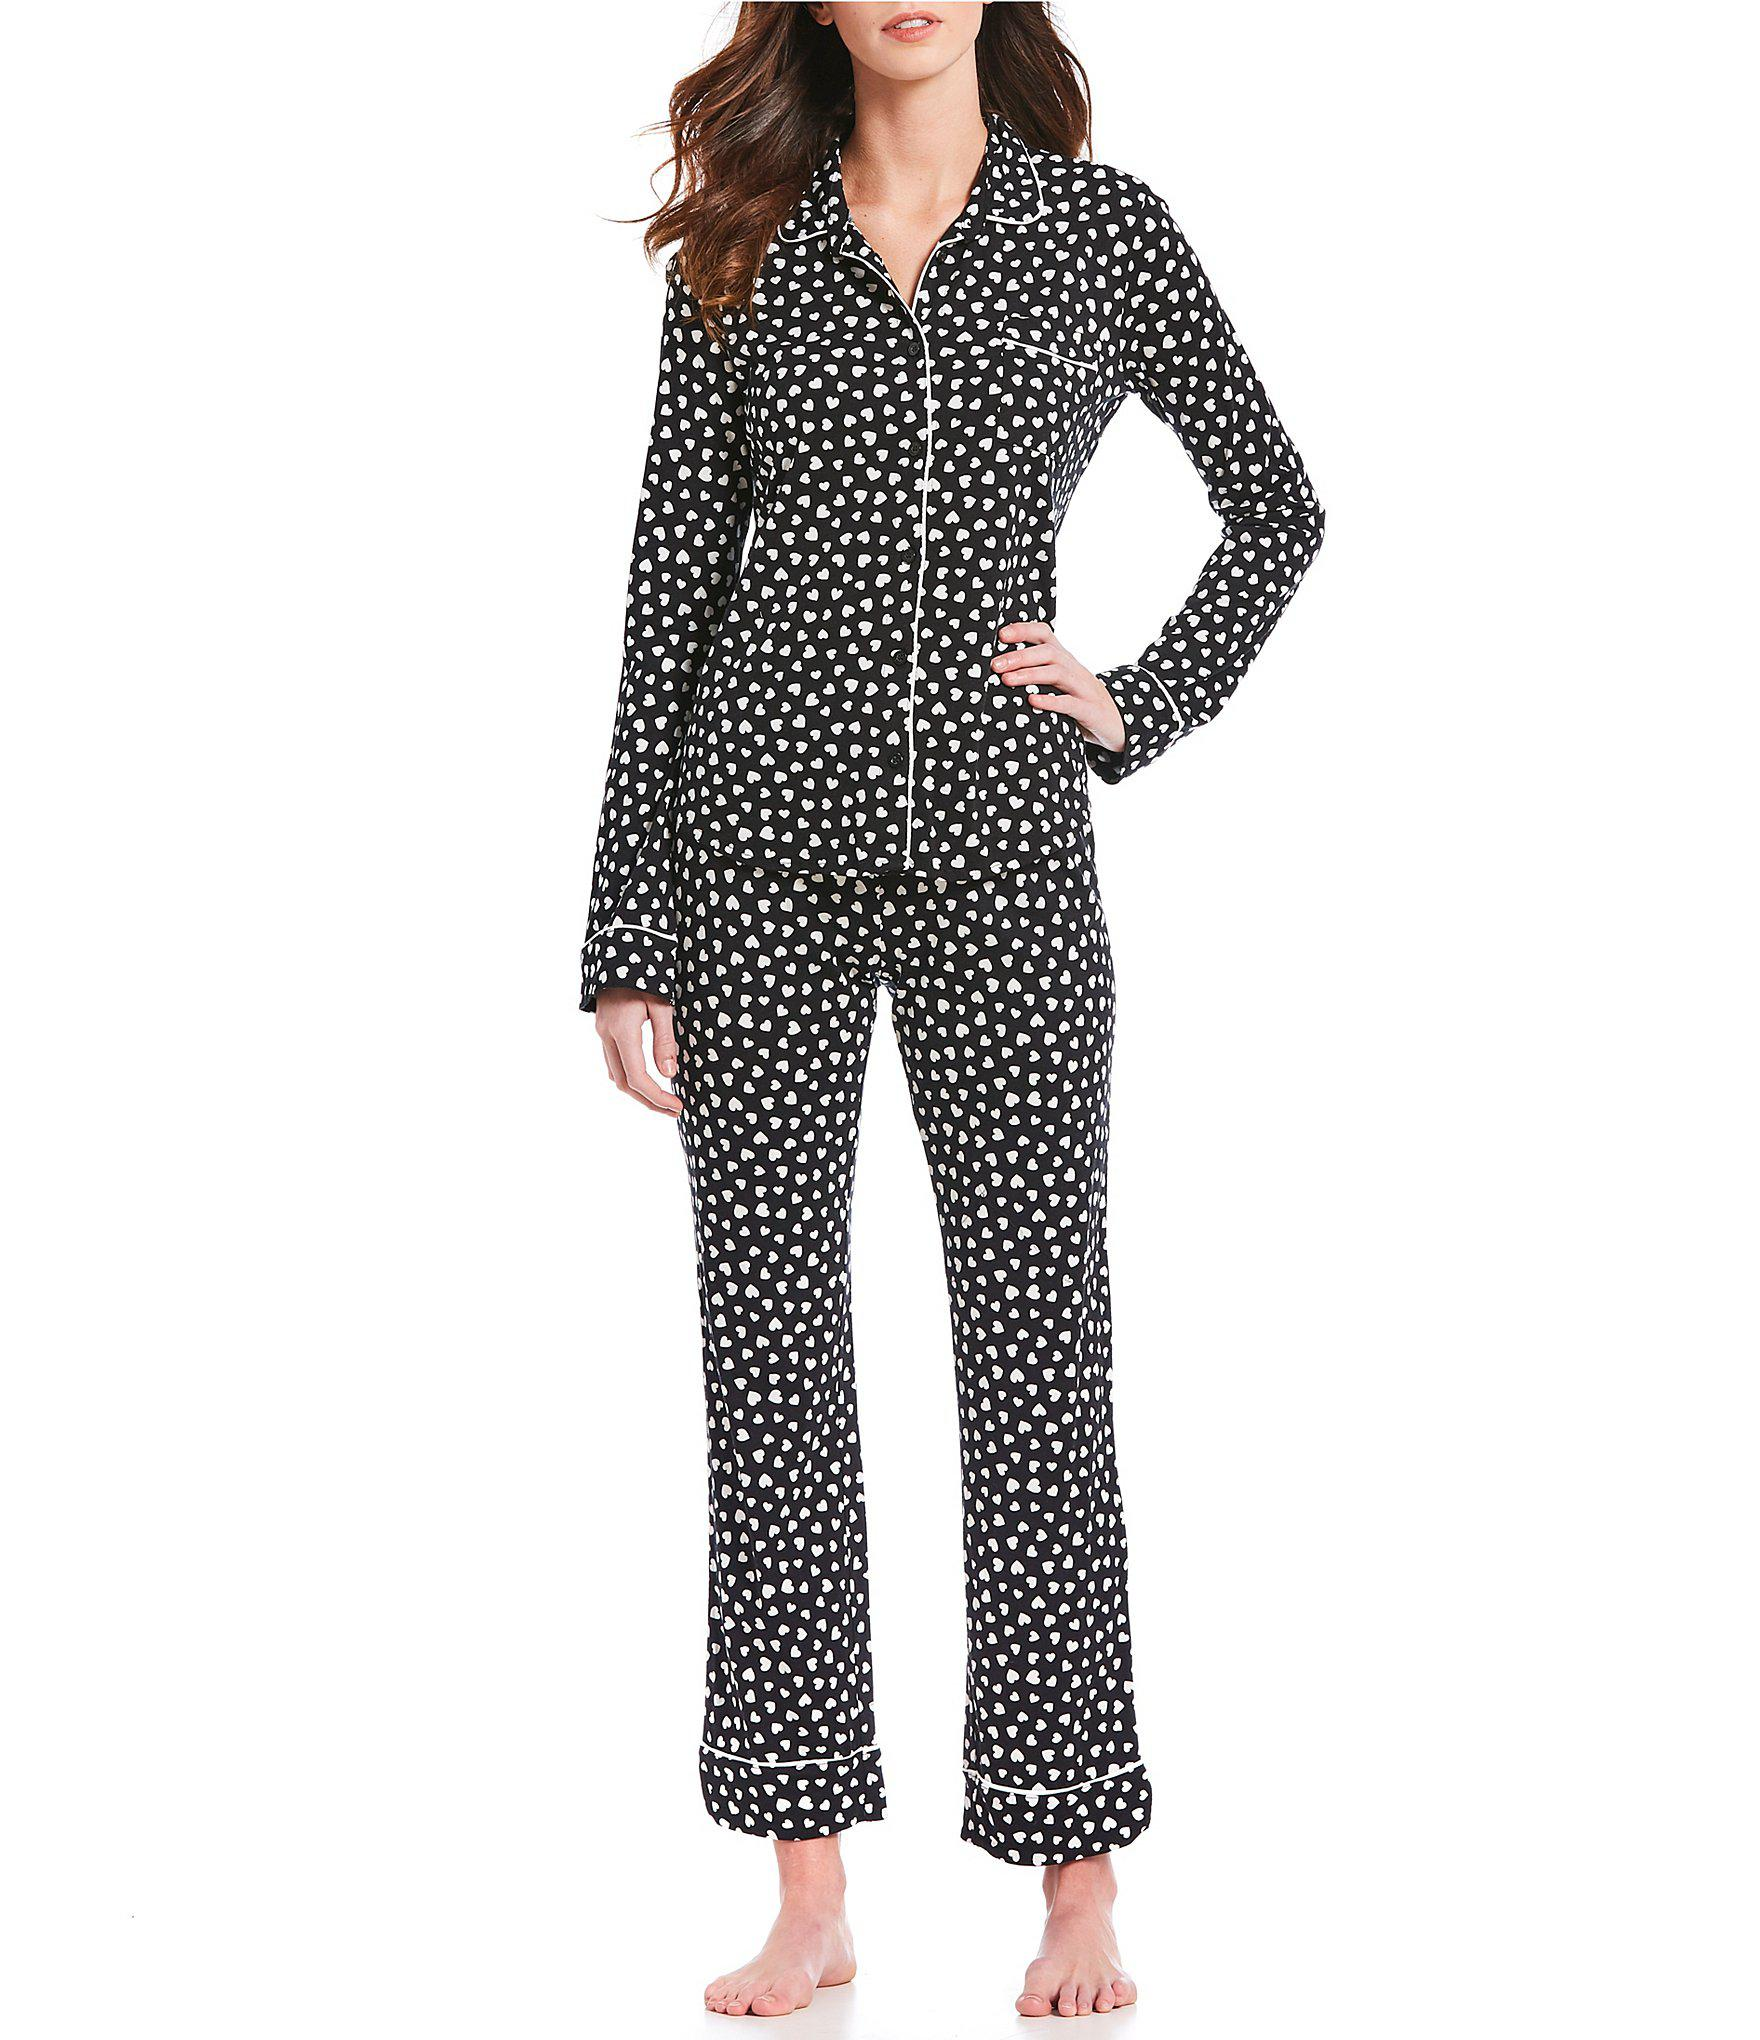 a4377fad361 Lyst - Pj Salvage Heart-print Modal Pajamas in Black